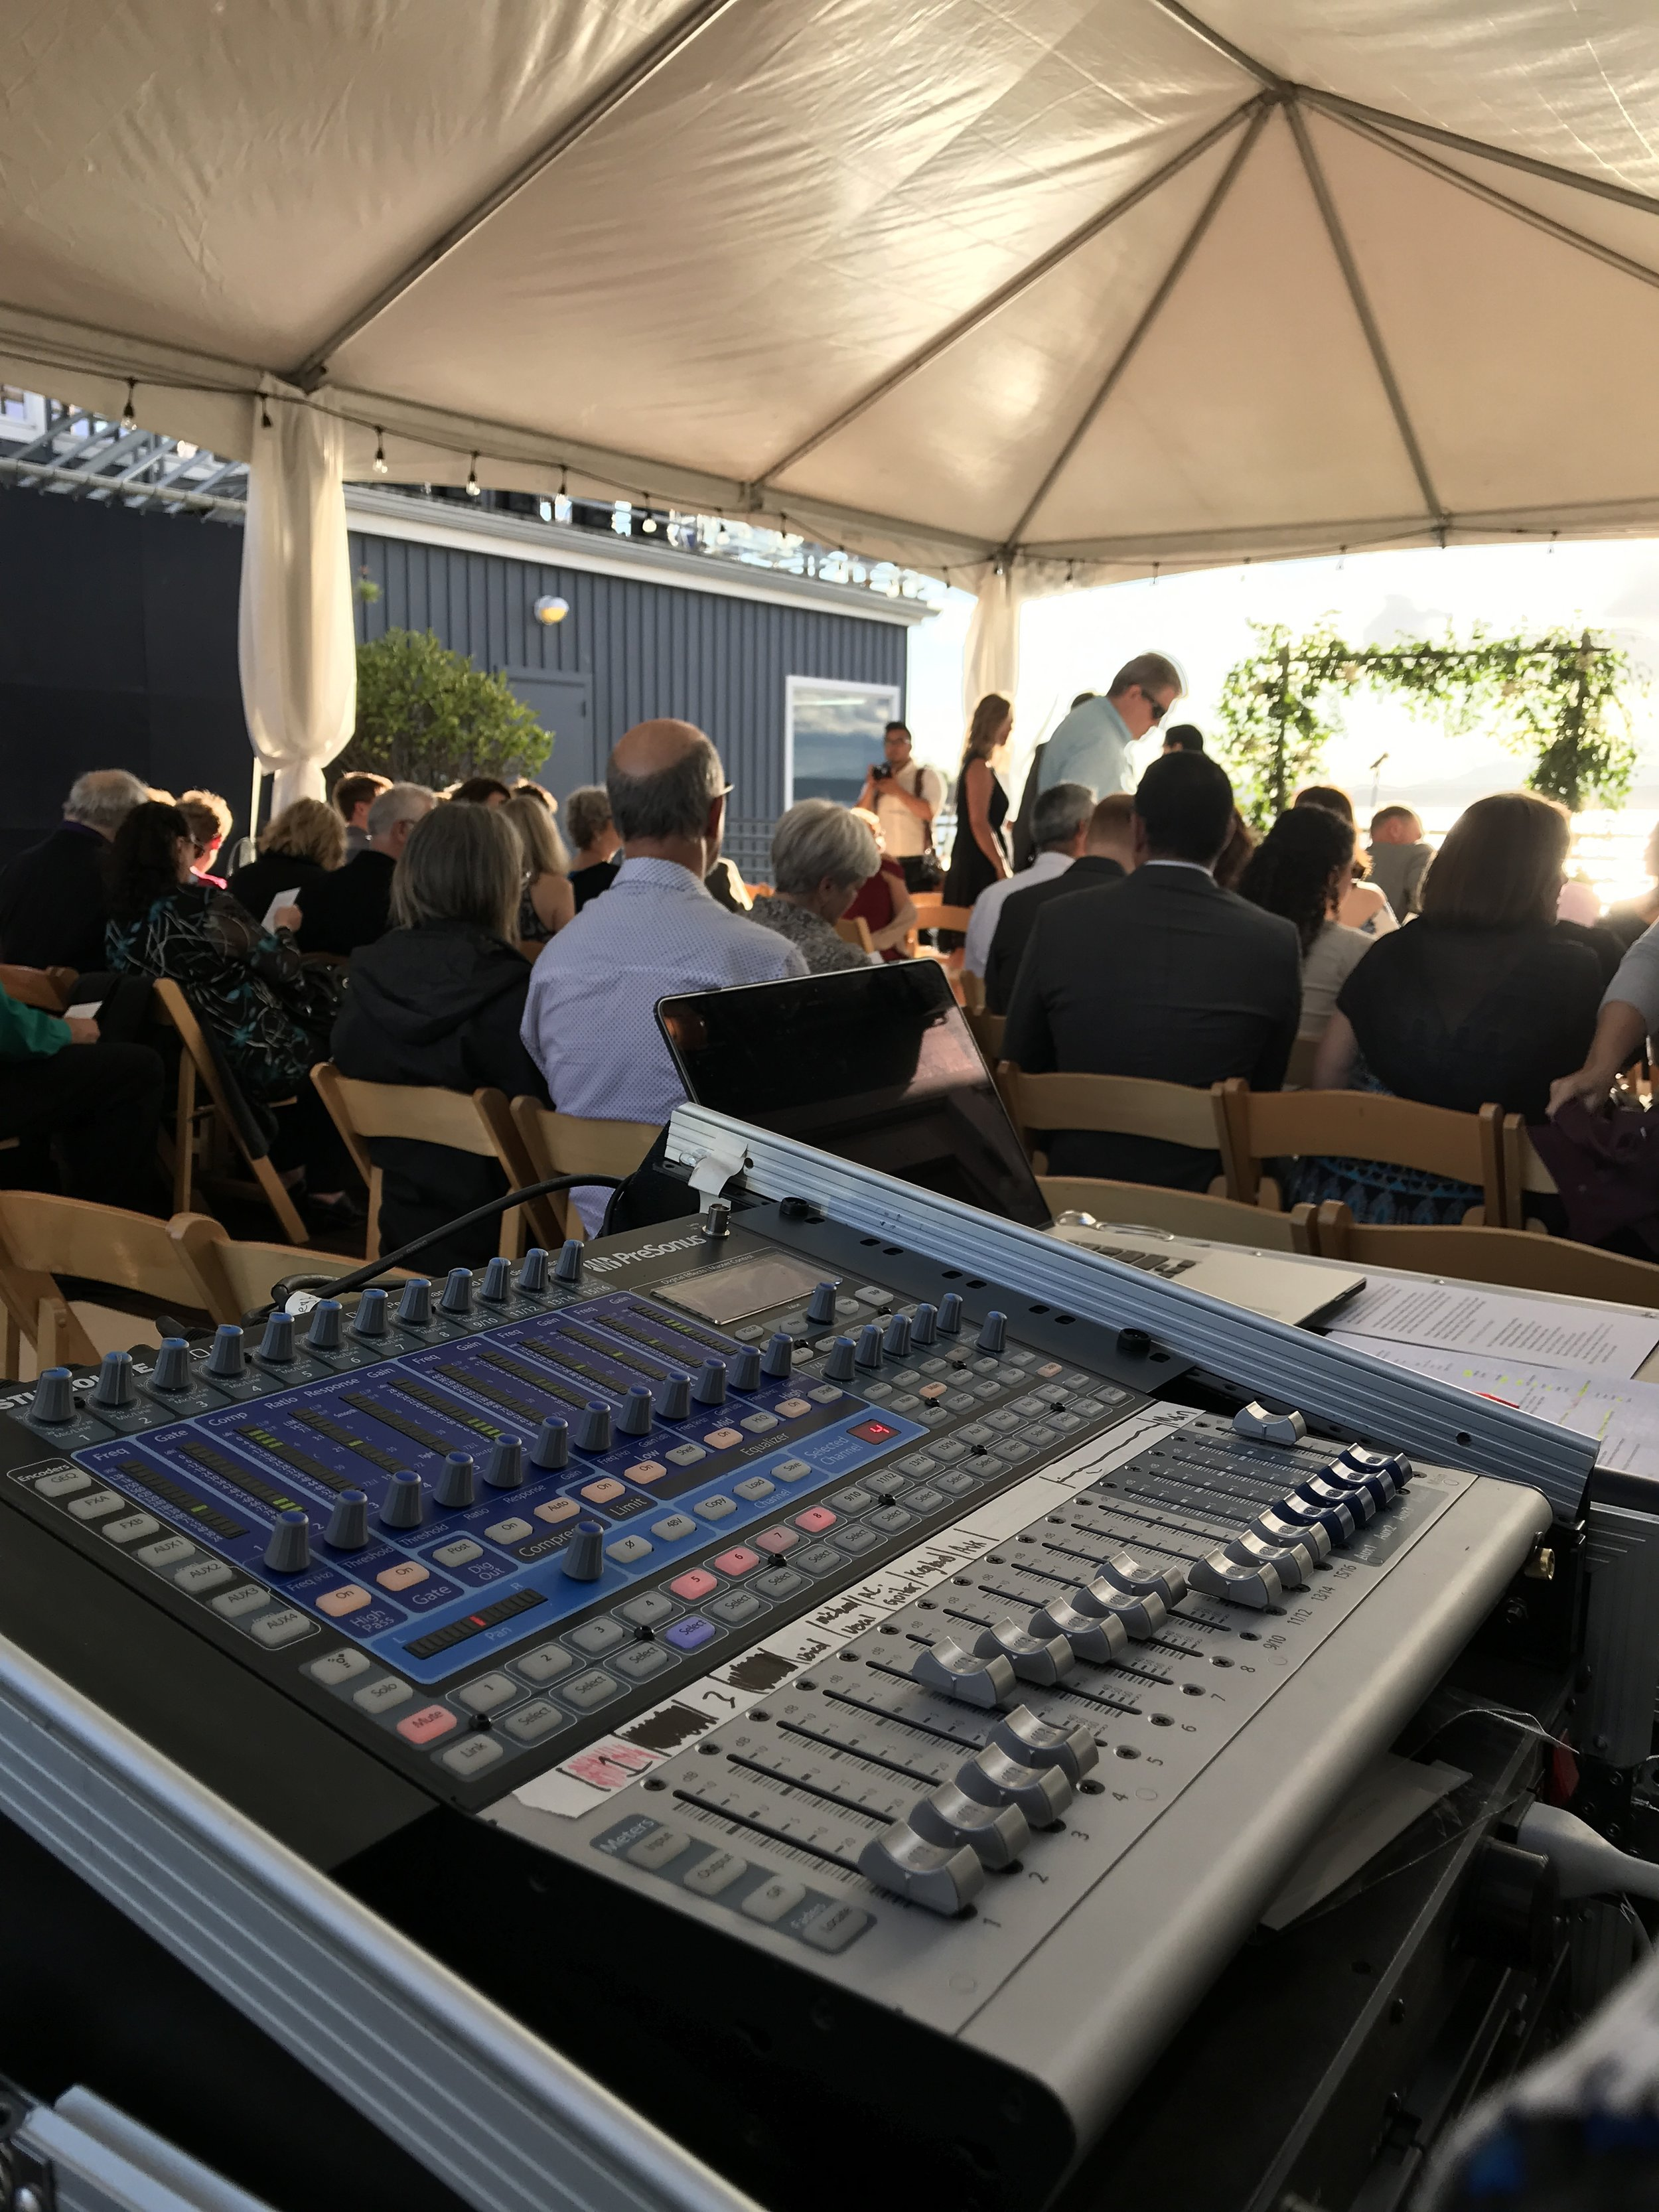 Our Digital mixer and Wireless Mic's on rental for a wedding ceremony